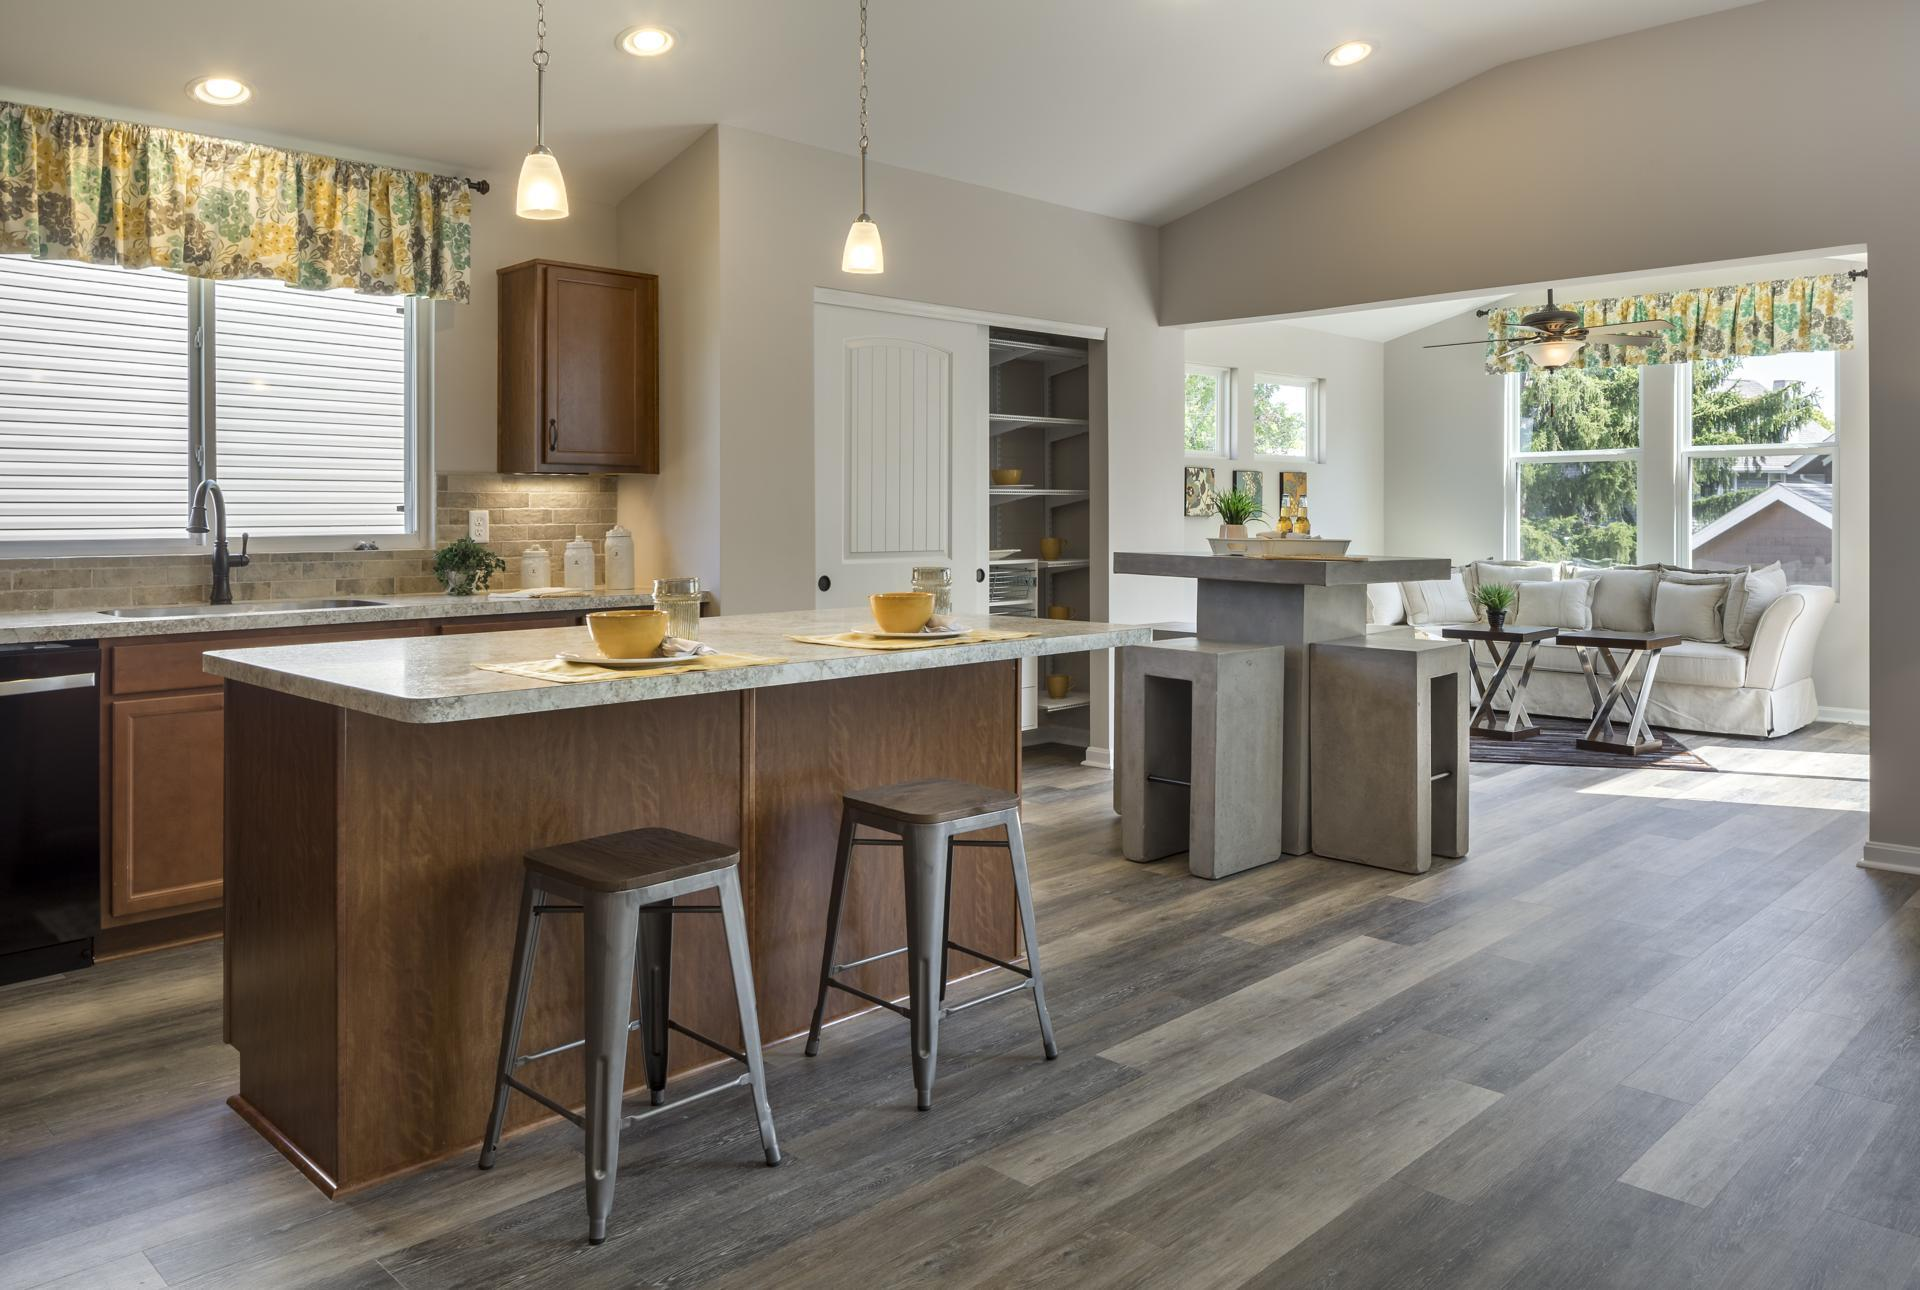 Kitchen featured in the Alexander By Drees Homes in Cincinnati, OH